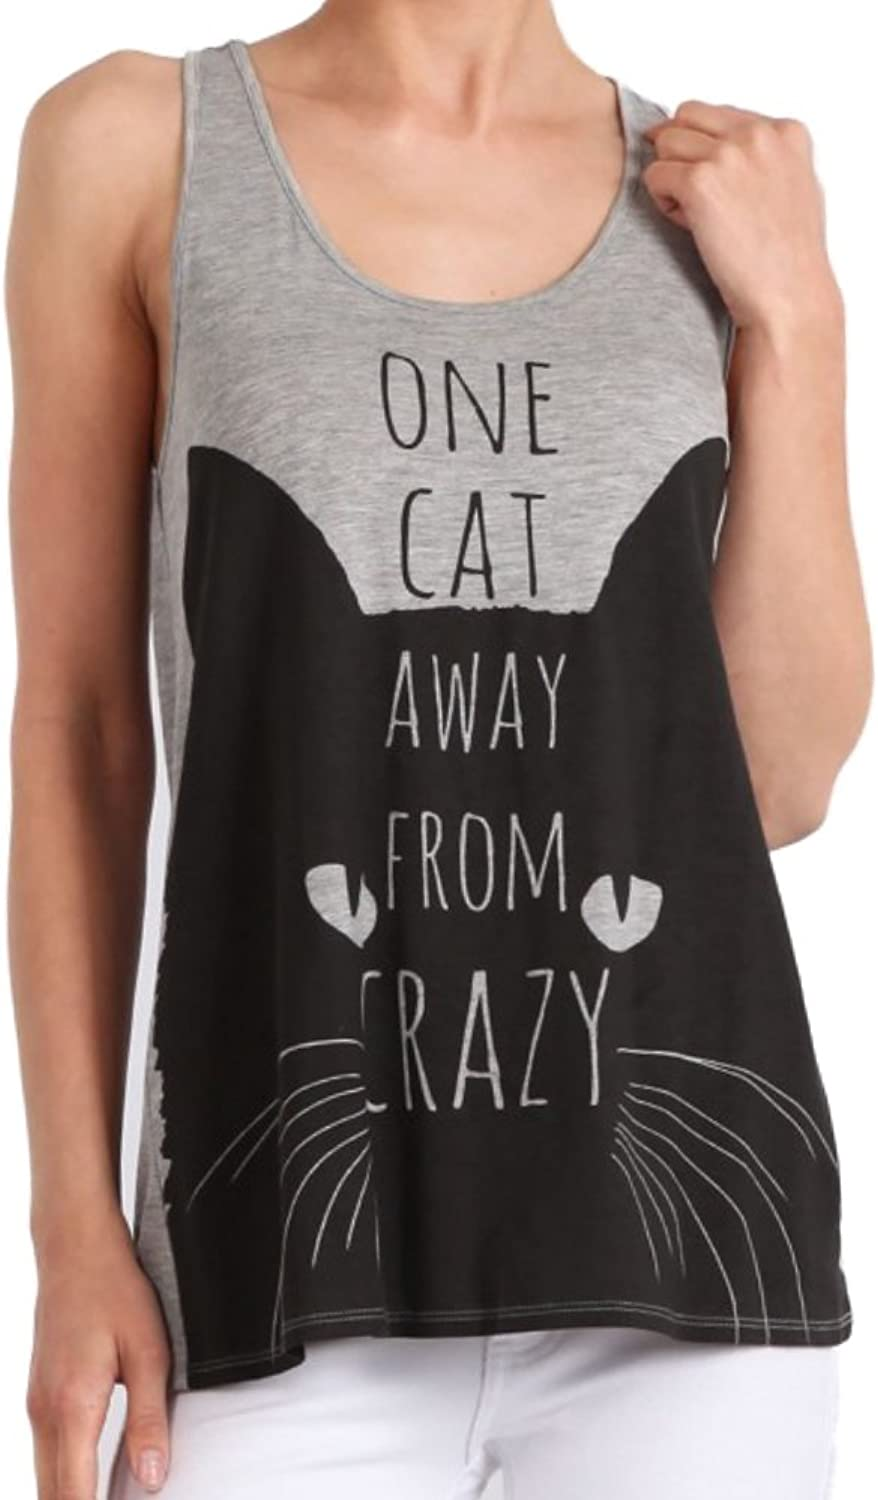 Bear Dance One Cat Away from Crazy Racerback Tank Cat Lady